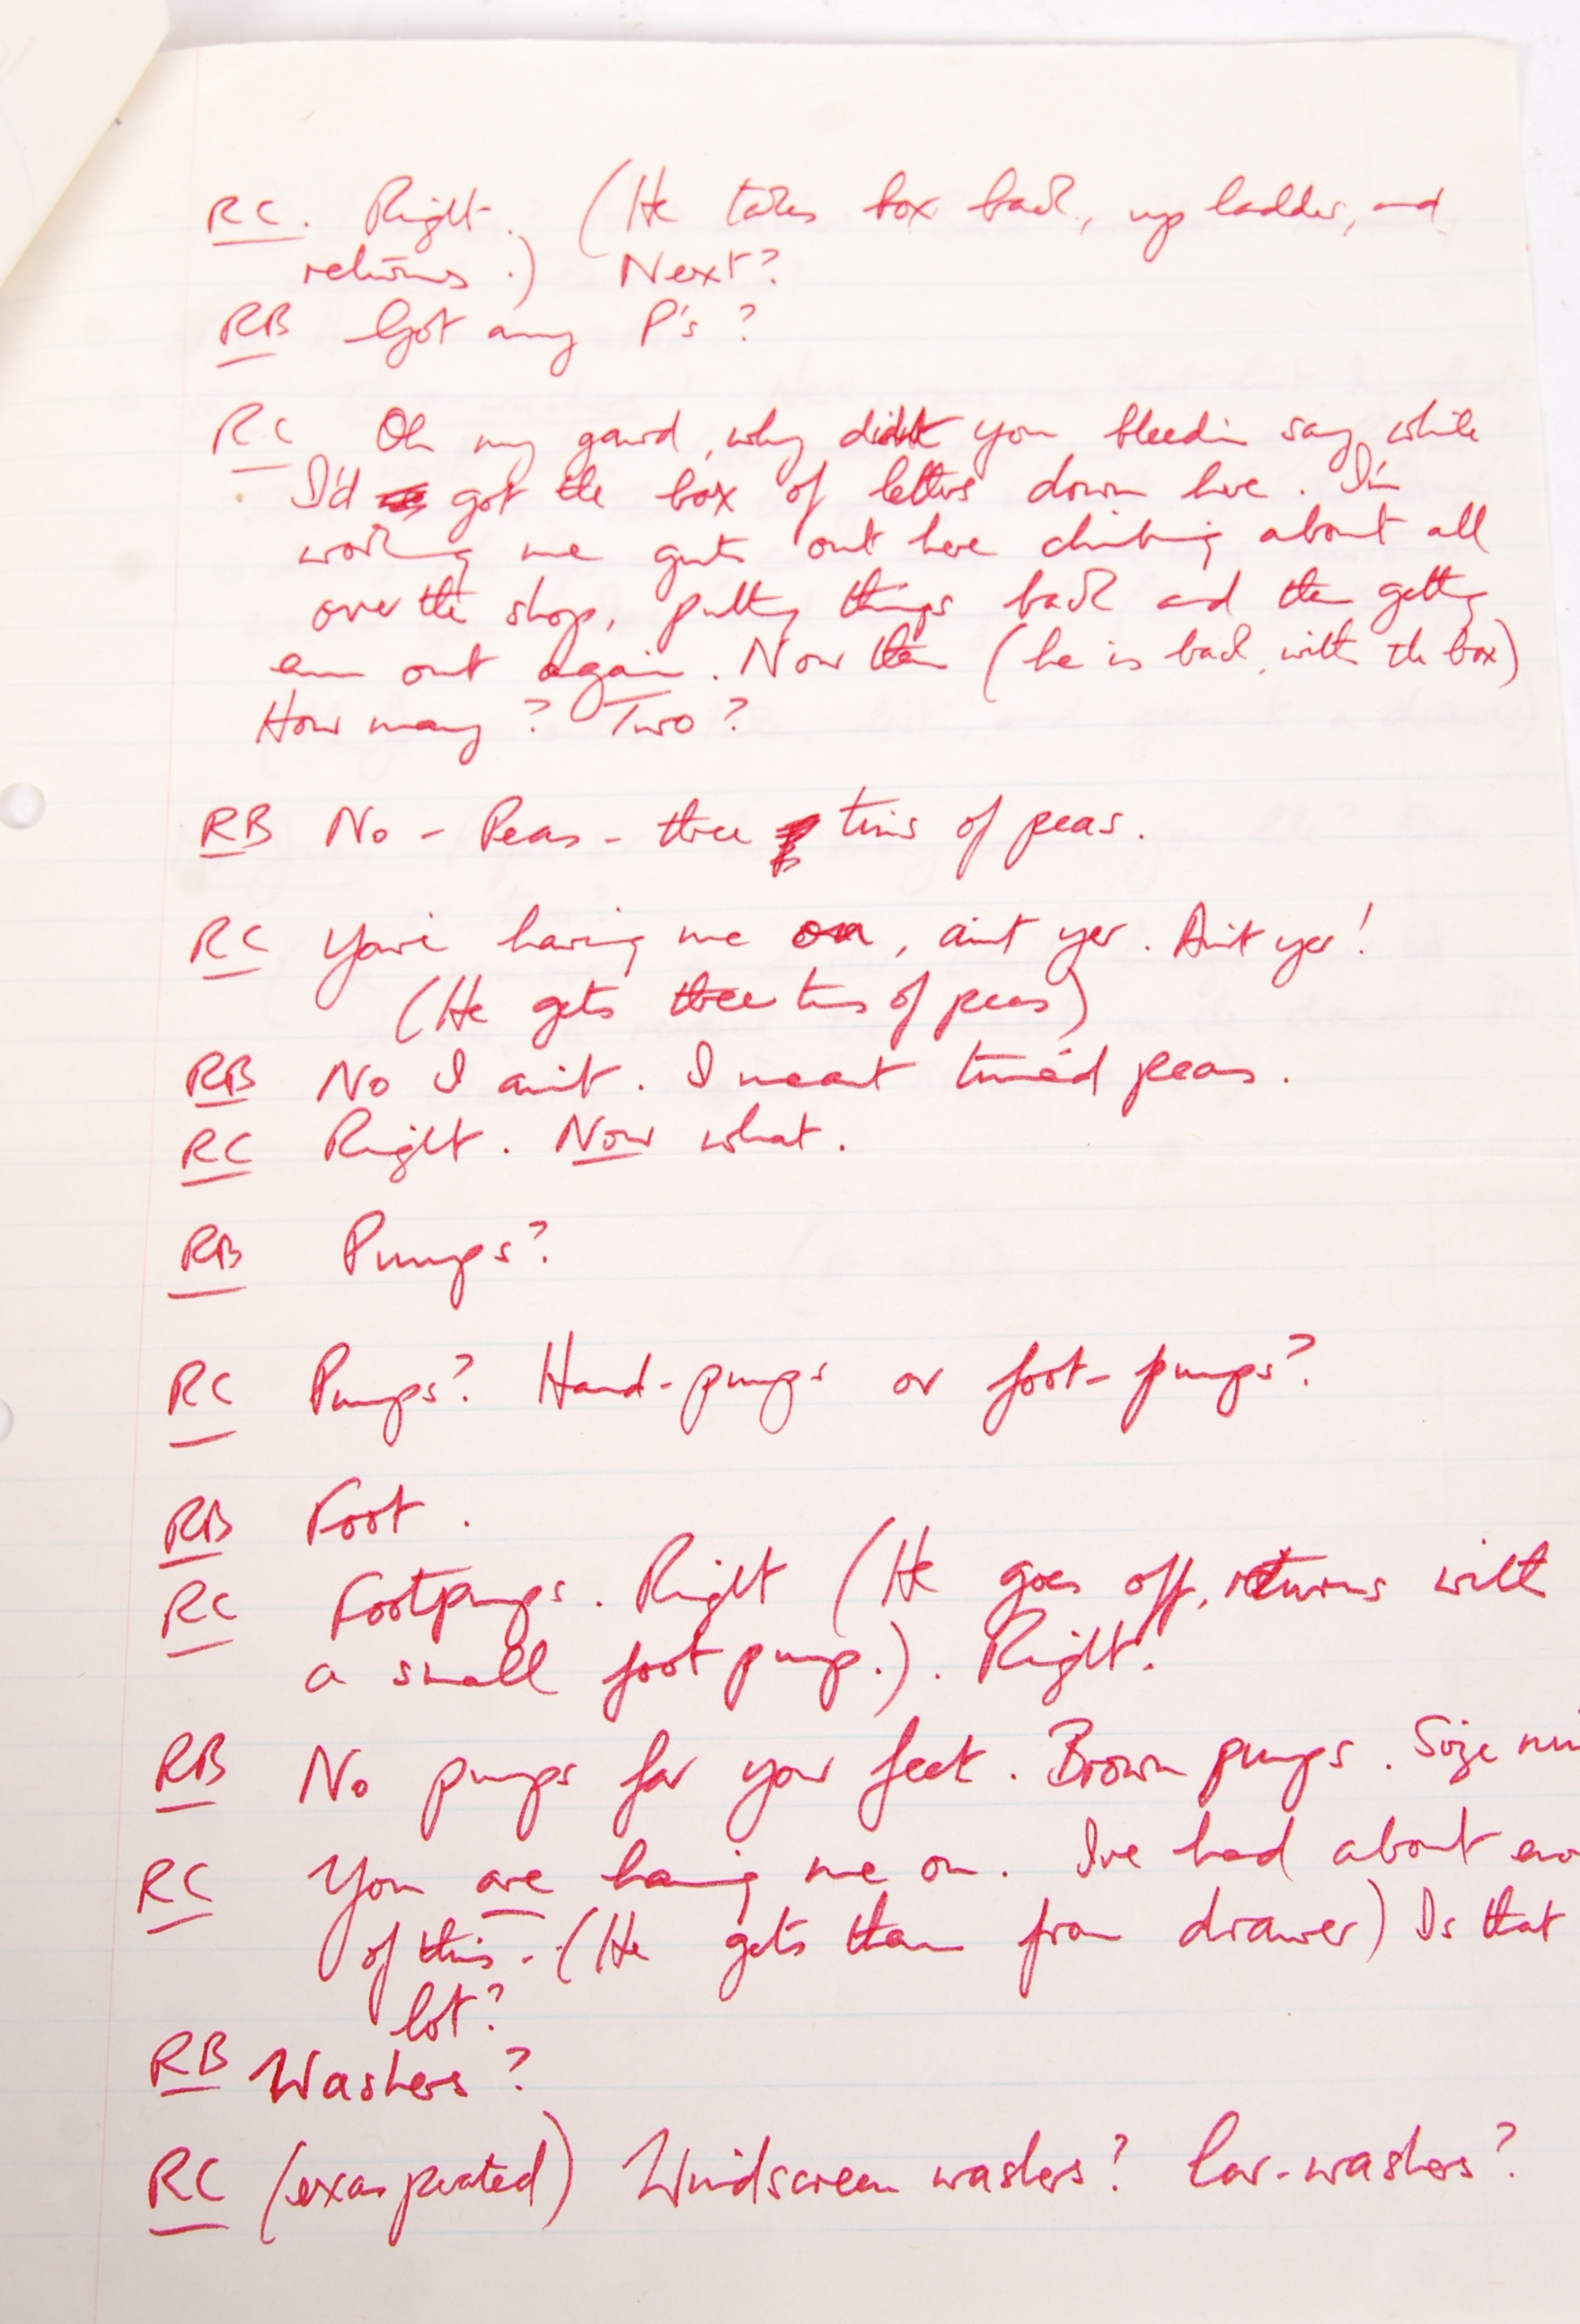 RONNIE BARKER'S HANDWRITTEN TWO RONNIES ' ANNIE FINKHOUSE ' FORK HANDLES SCRIPT - Image 5 of 7